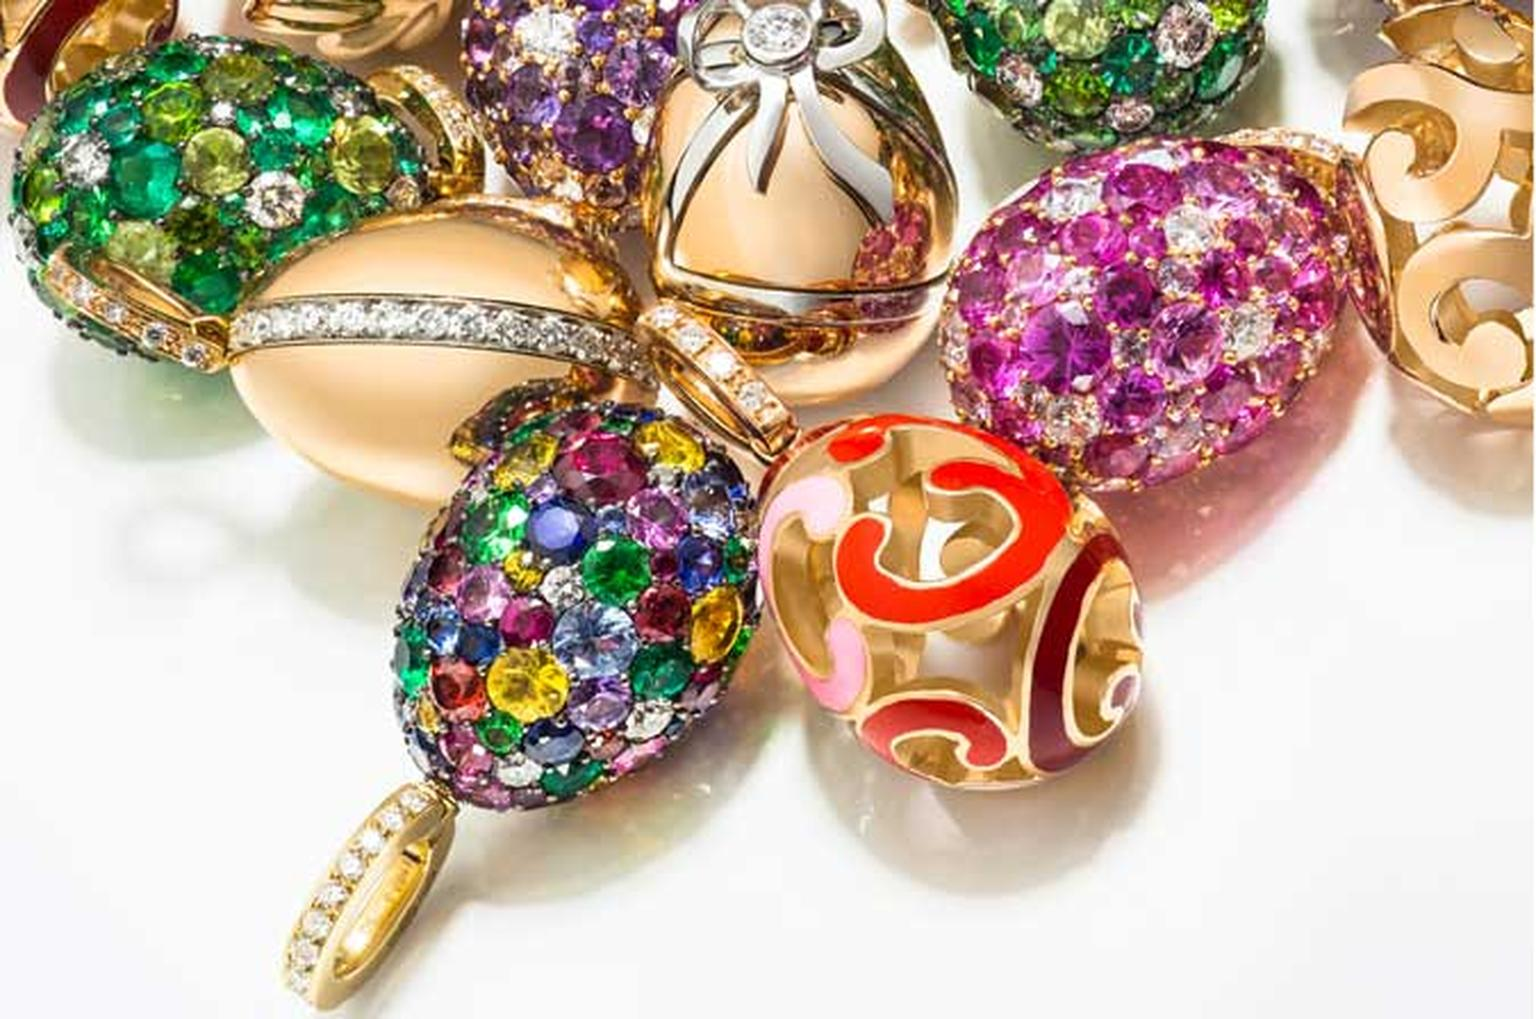 Faberge egg charms